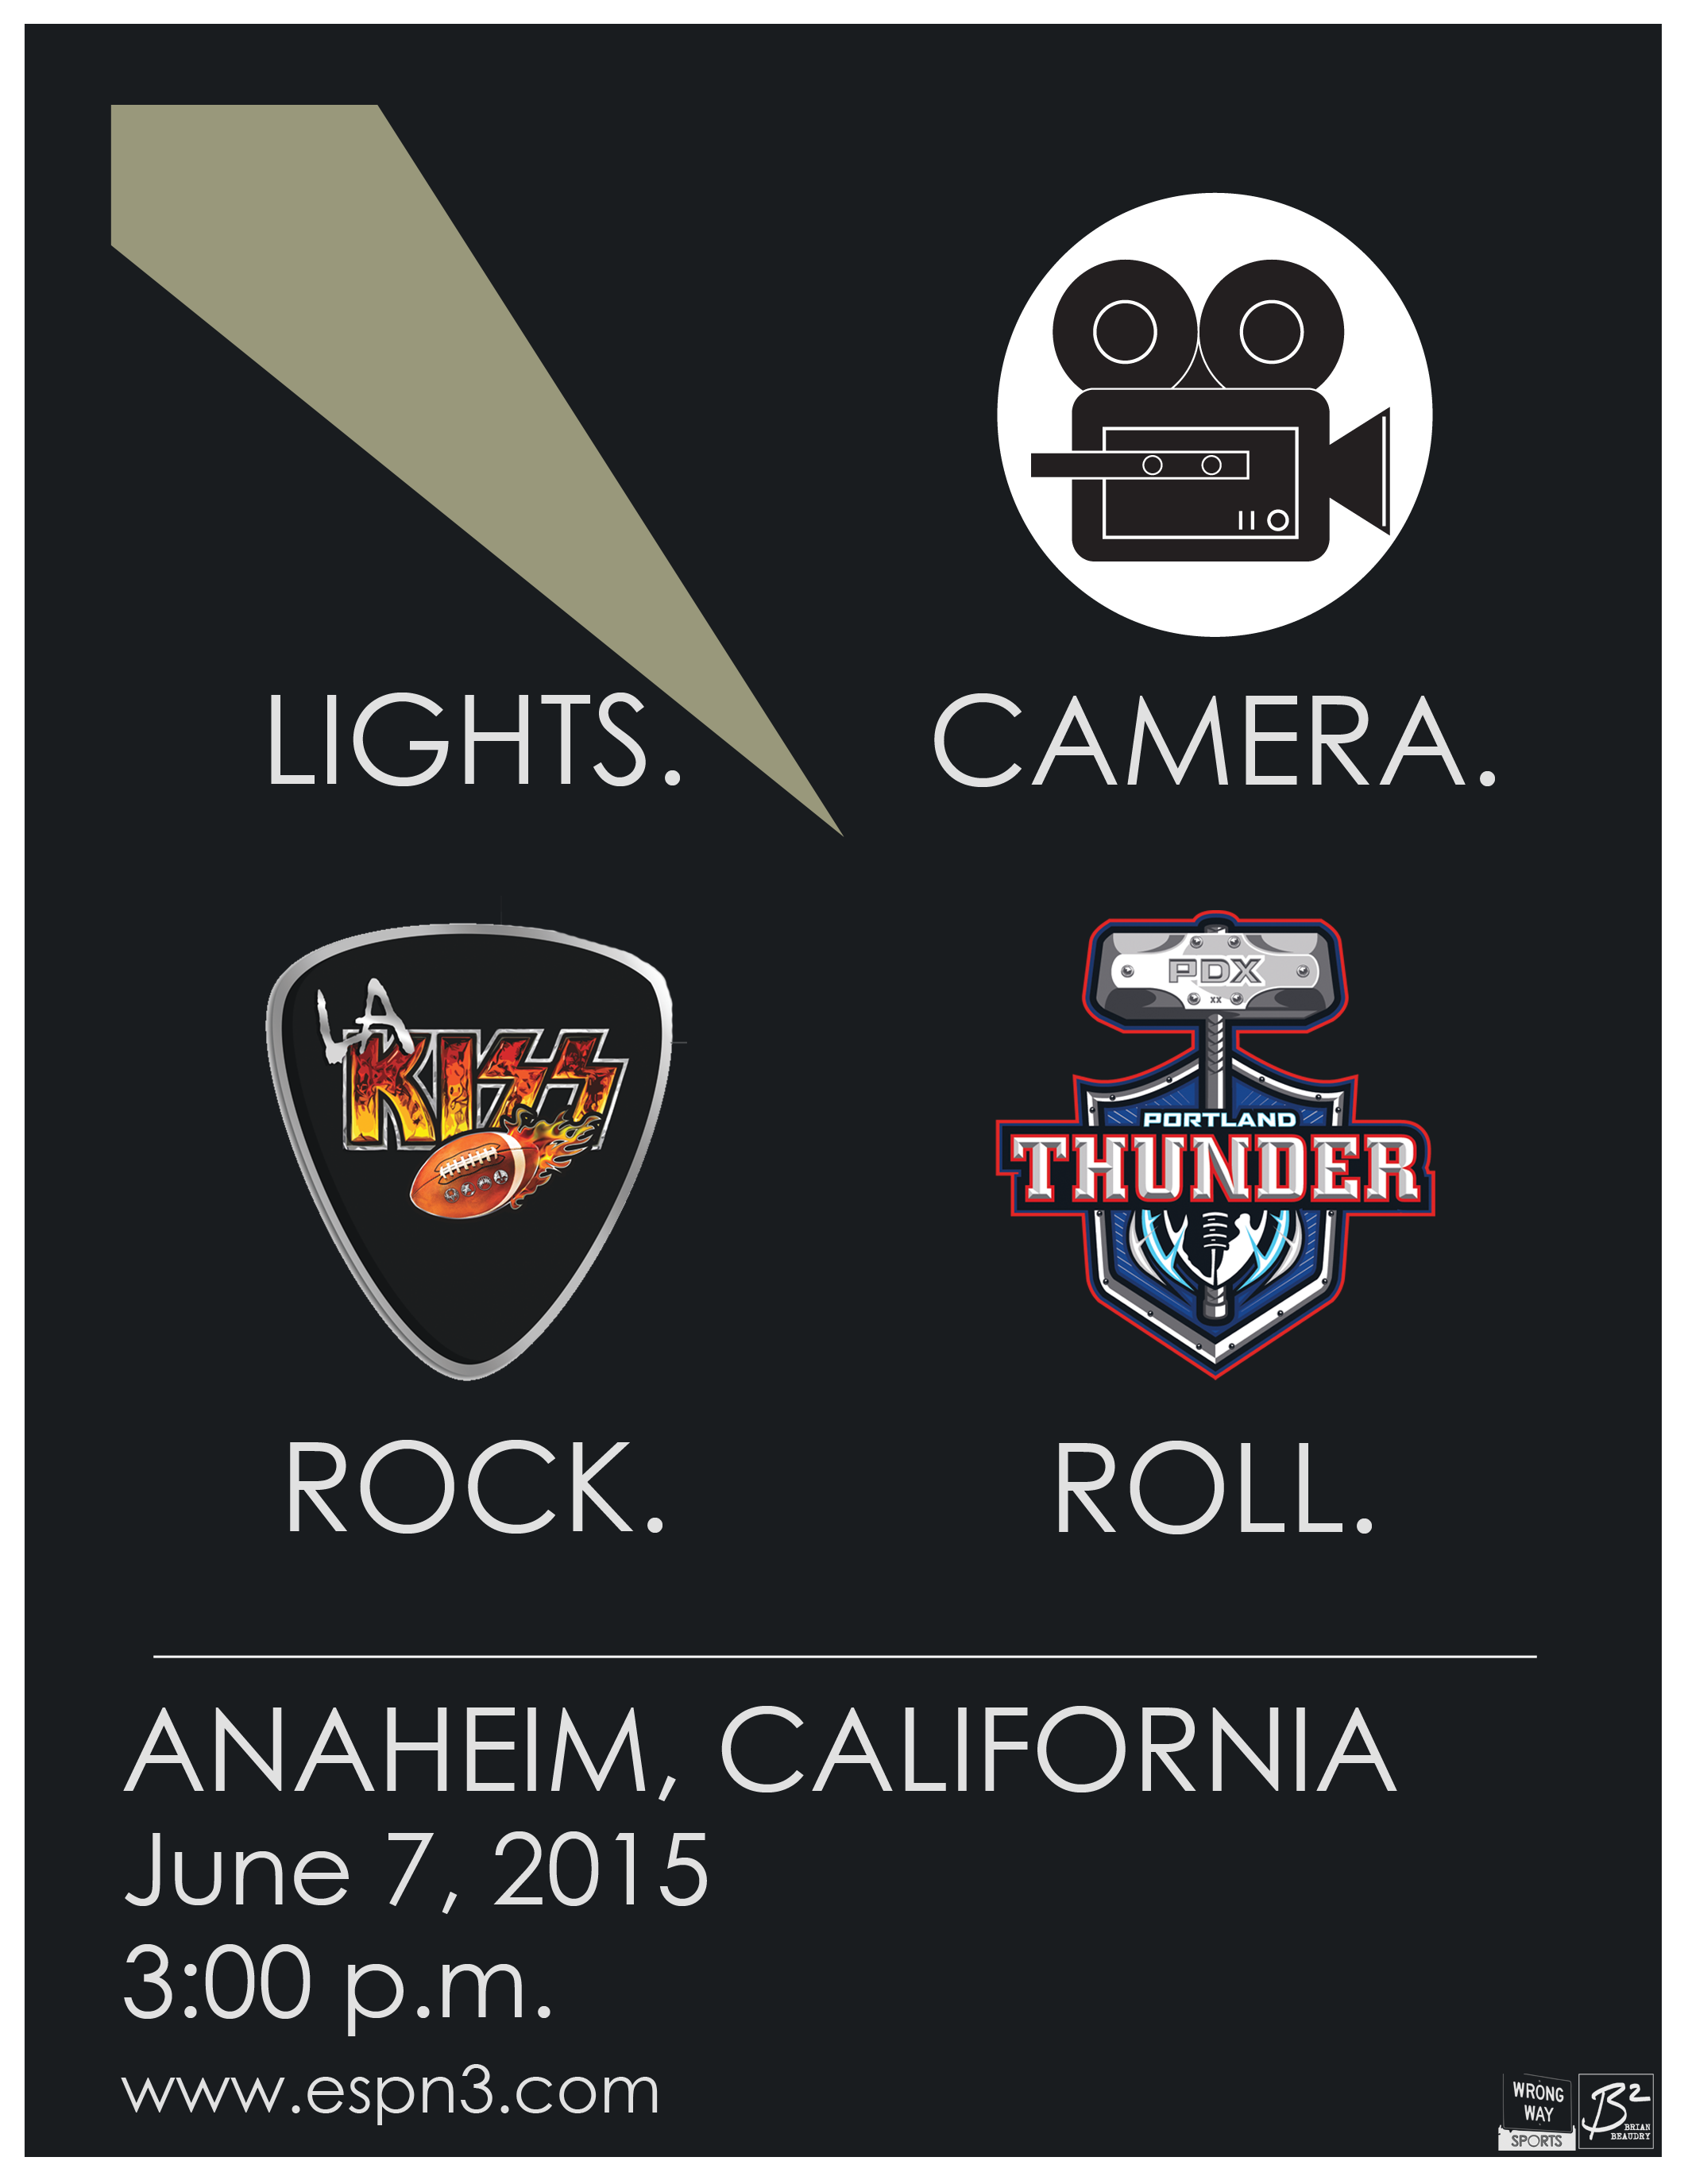 Lights. Camera. Rock (Los Angeles KISS). Roll (Portland Thunder). Location: Anaheim, CA. Date: June 7, 2015. Time: 3 p.m. View it on espn3.com.